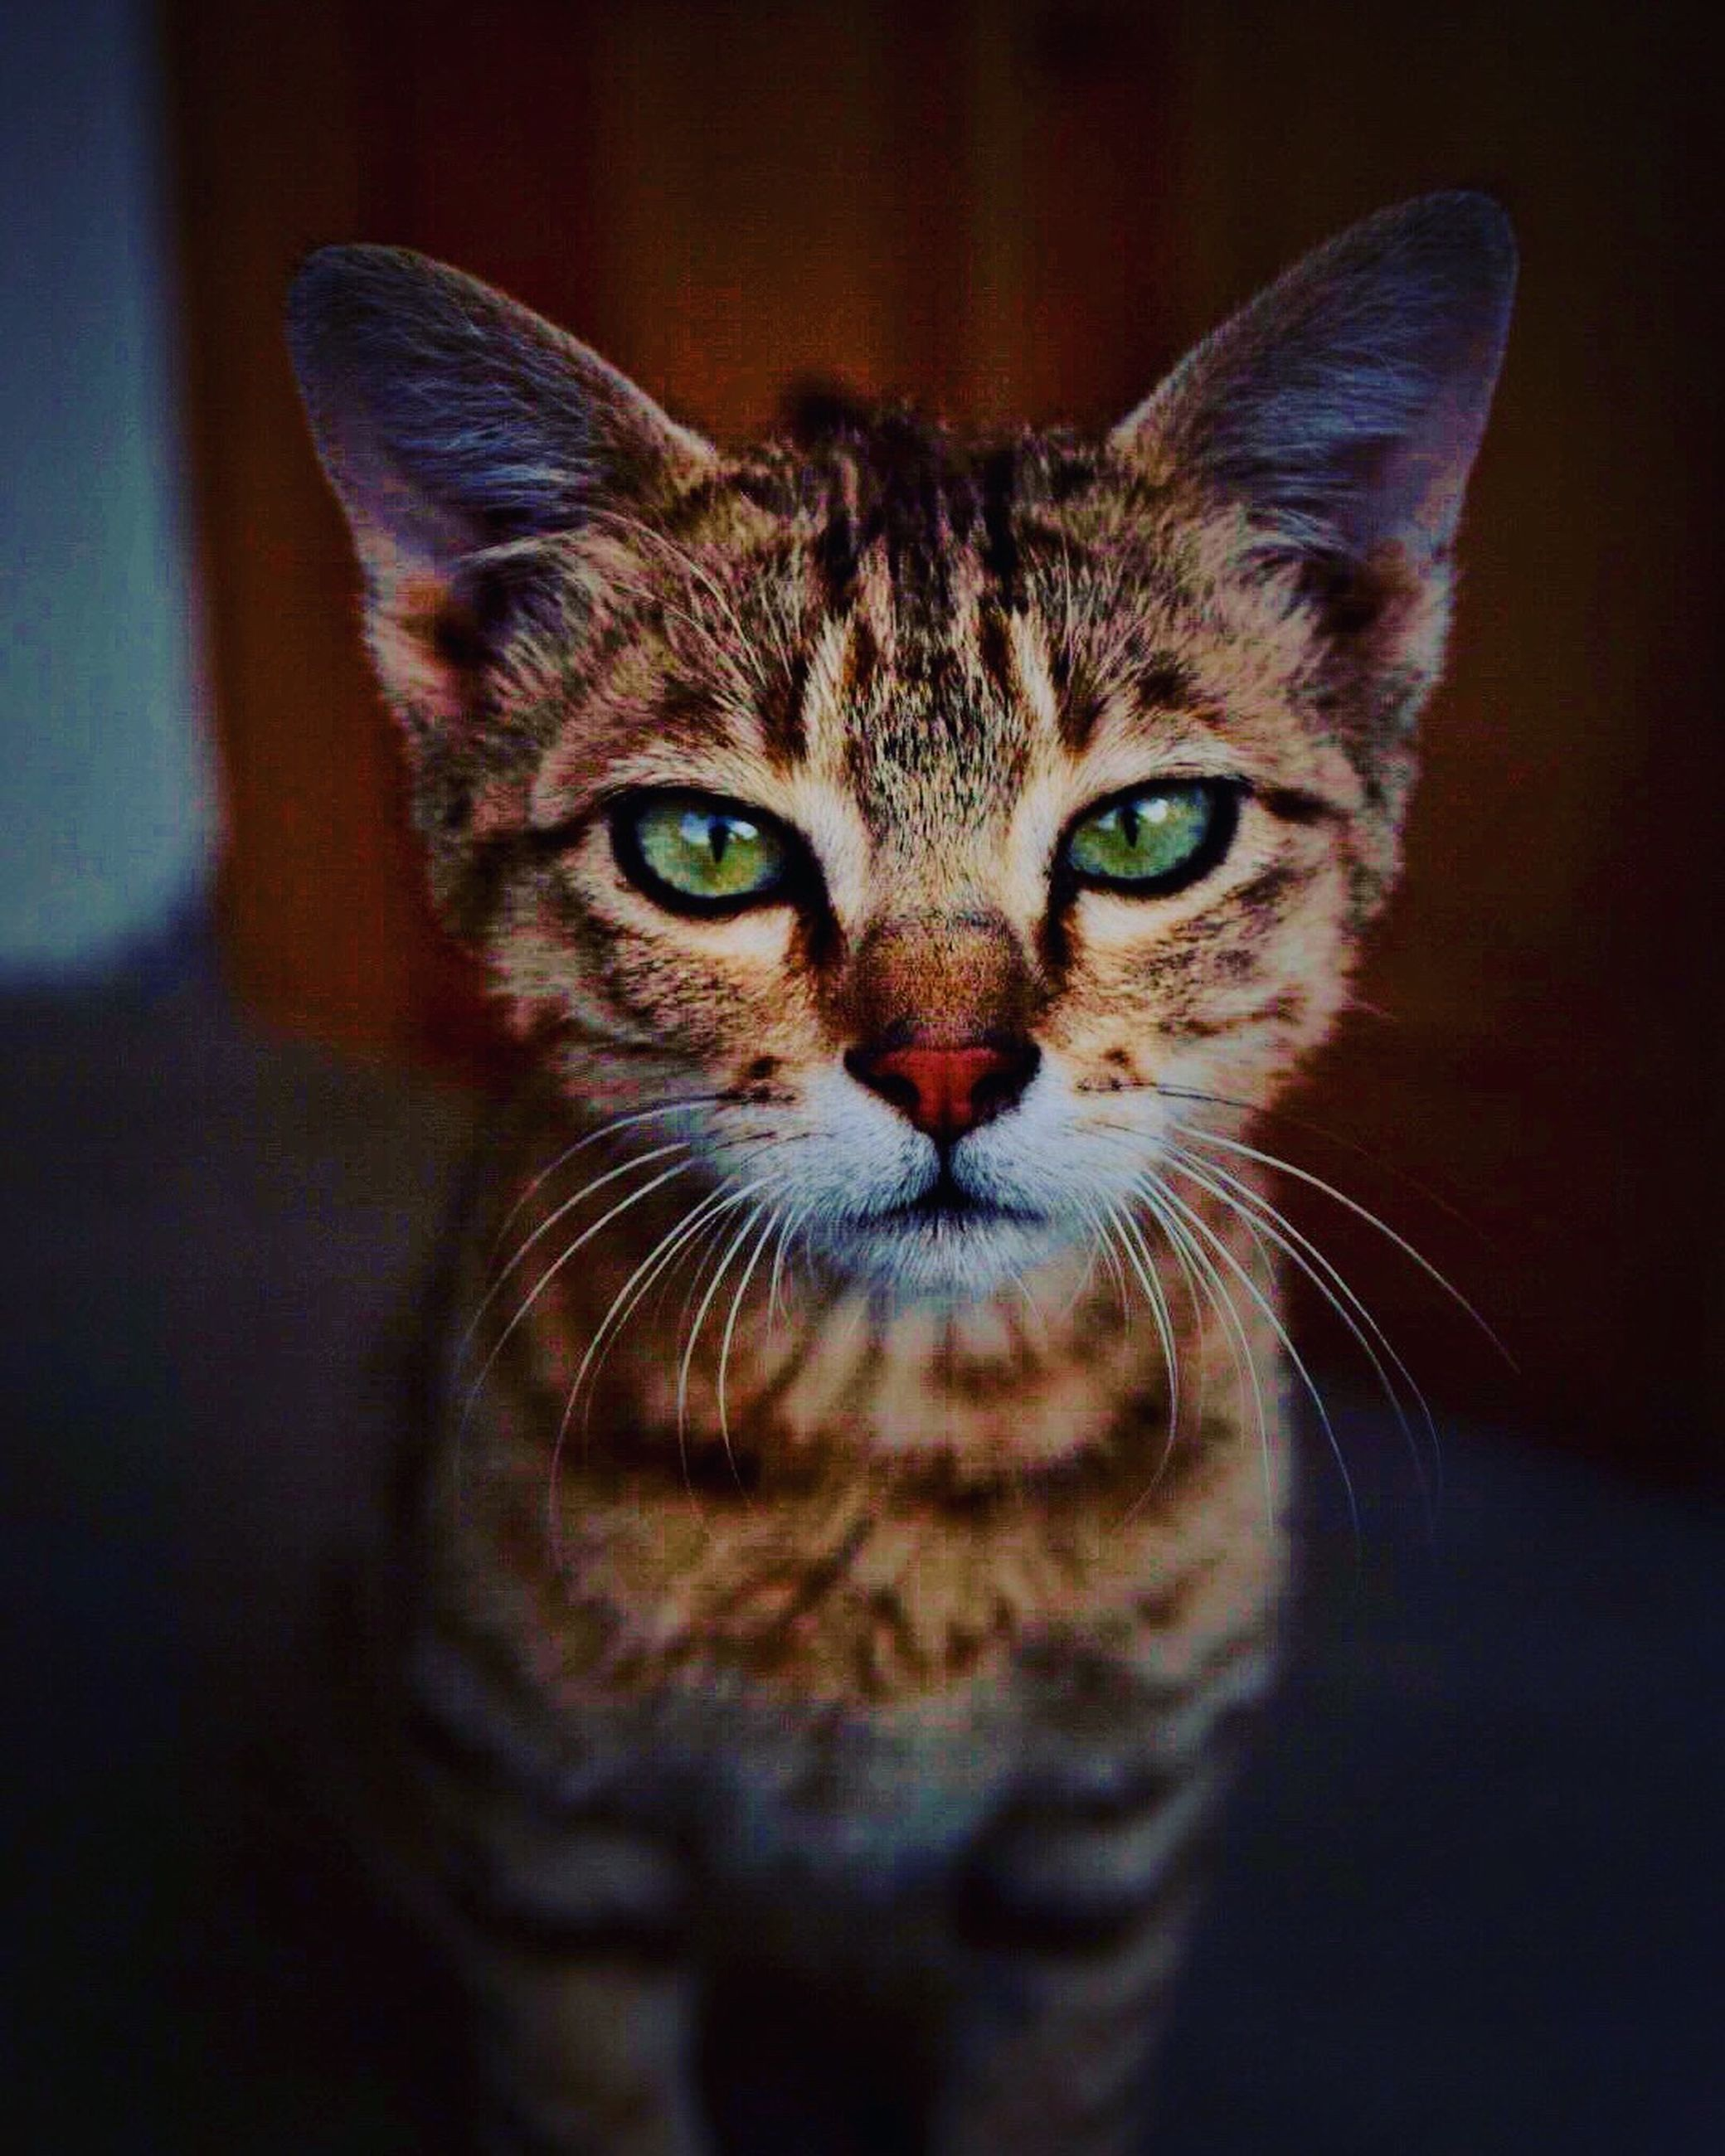 mammal, portrait, domestic cat, pets, cat, domestic animals, looking at camera, feline, domestic, one animal, whisker, no people, close-up, indoors, animal body part, front view, vertebrate, animal eye, tabby